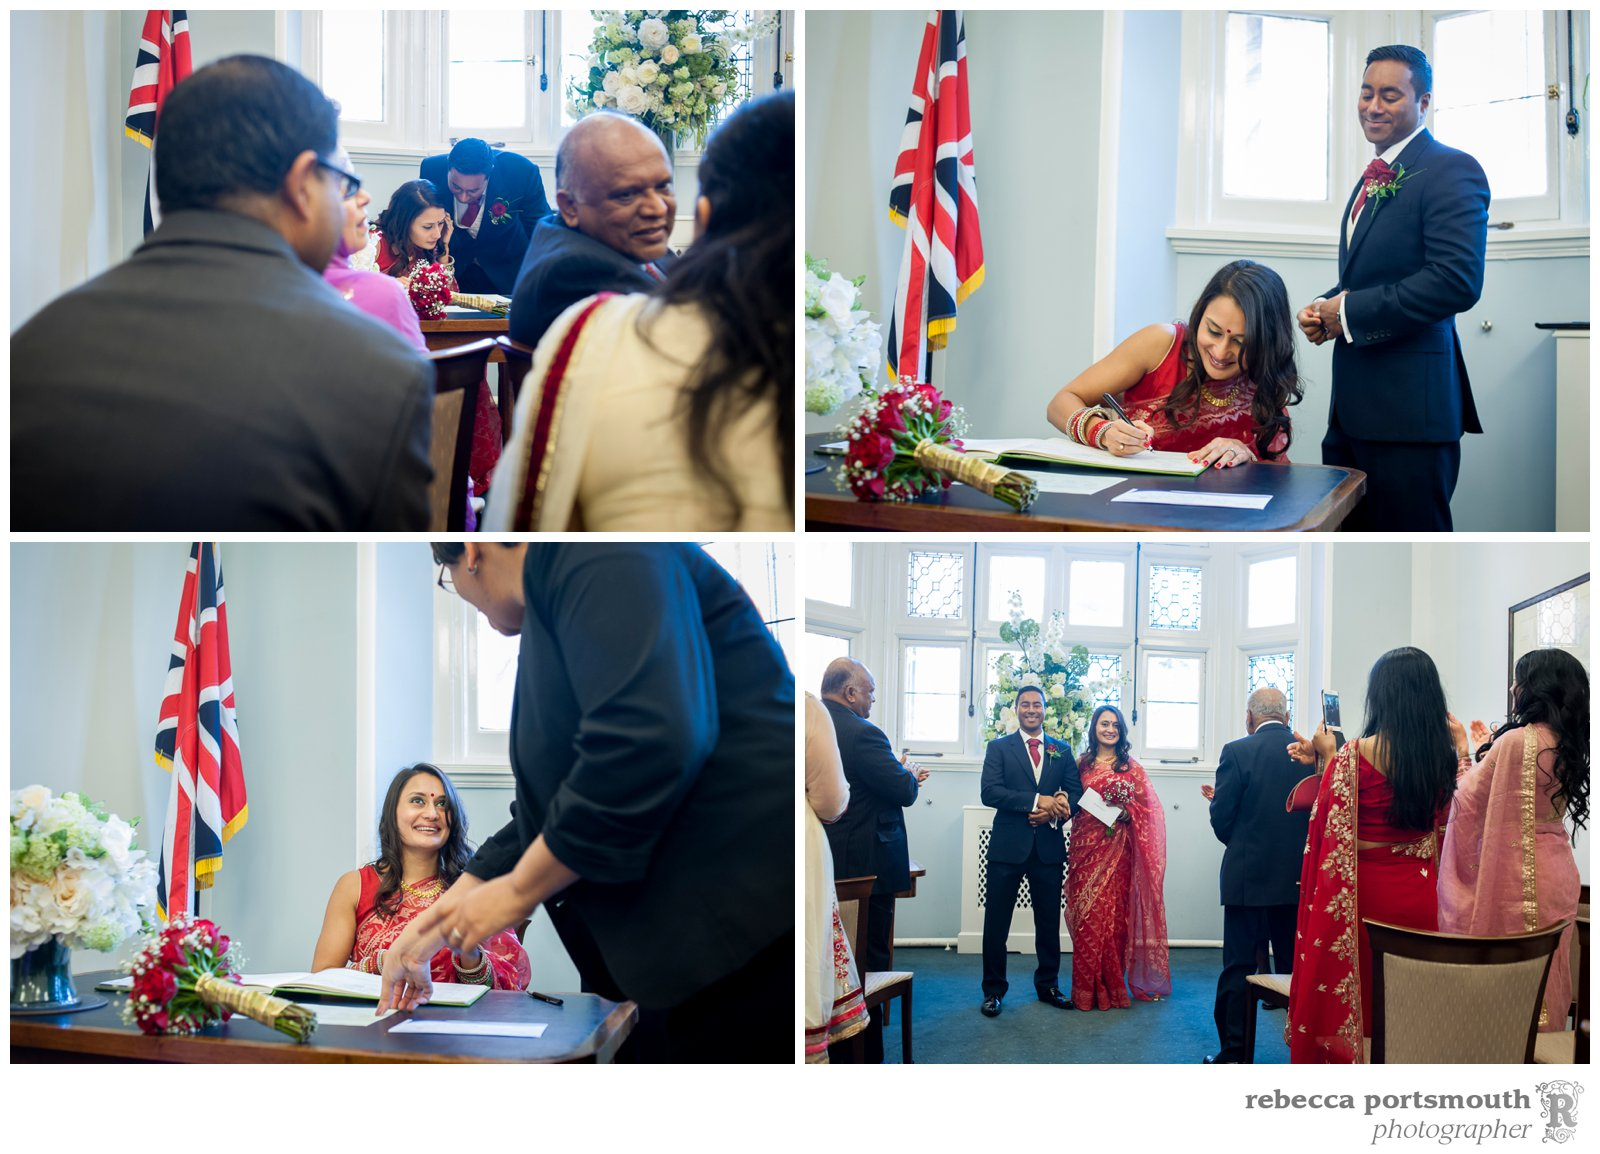 The bride and groom sign the register in front of their friends and family at their Mayfair Library wedding ceremony in Mayfair, central London.